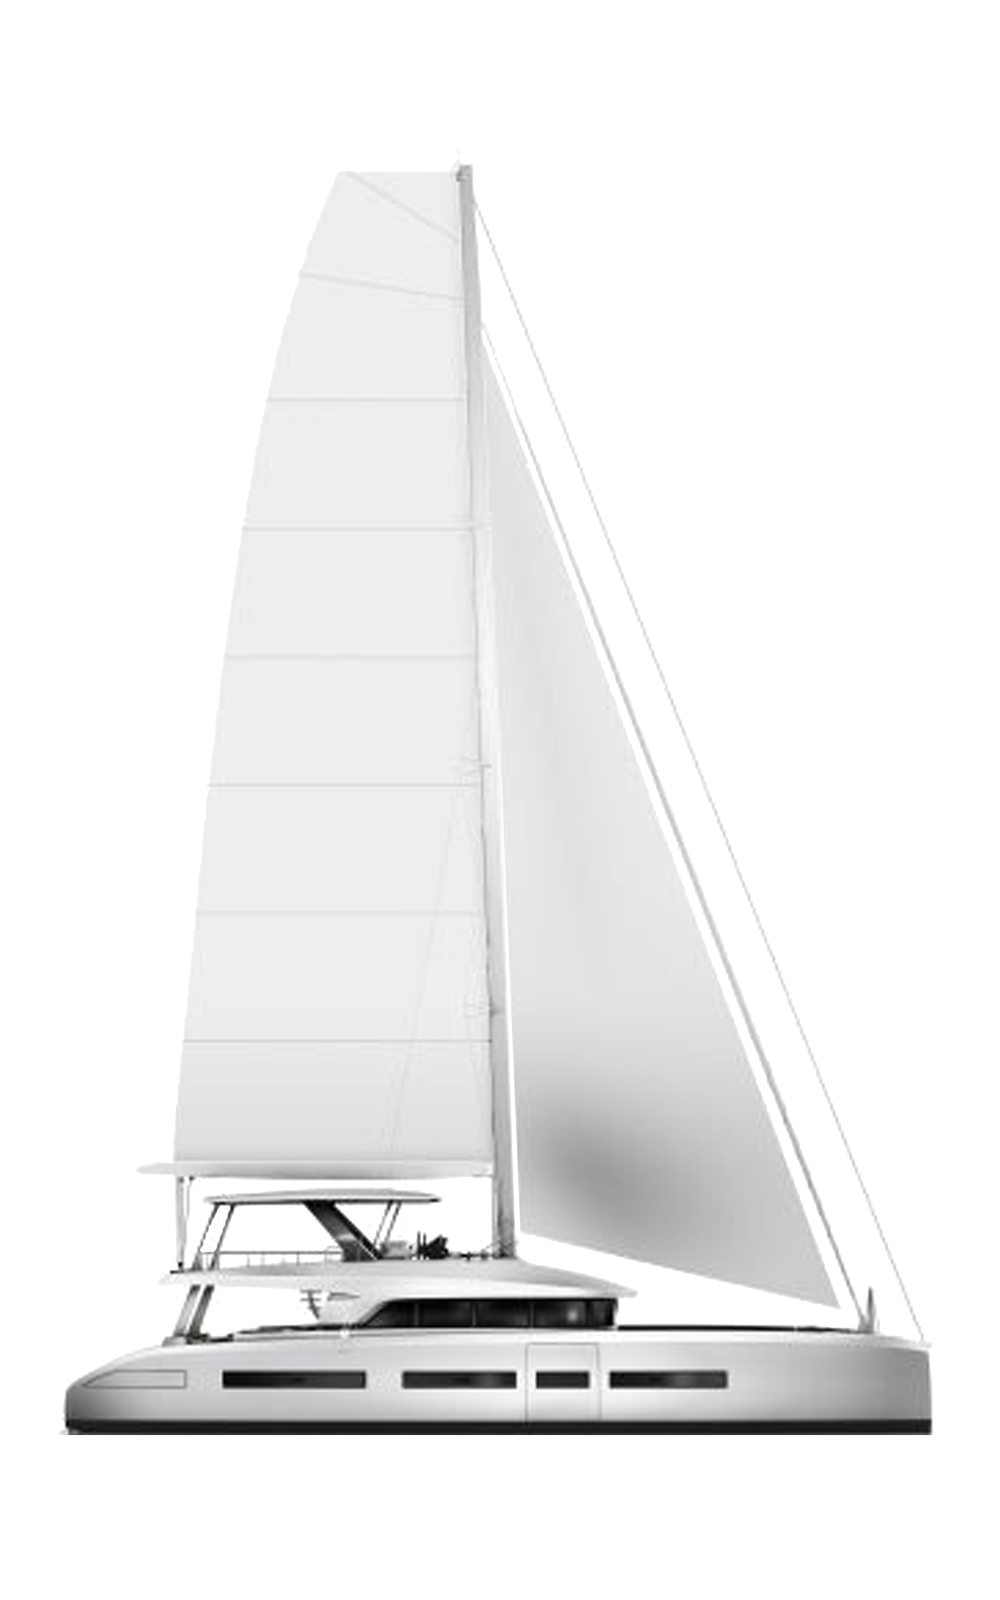 Lagoon Sailing Catamarans Range Line Drawing